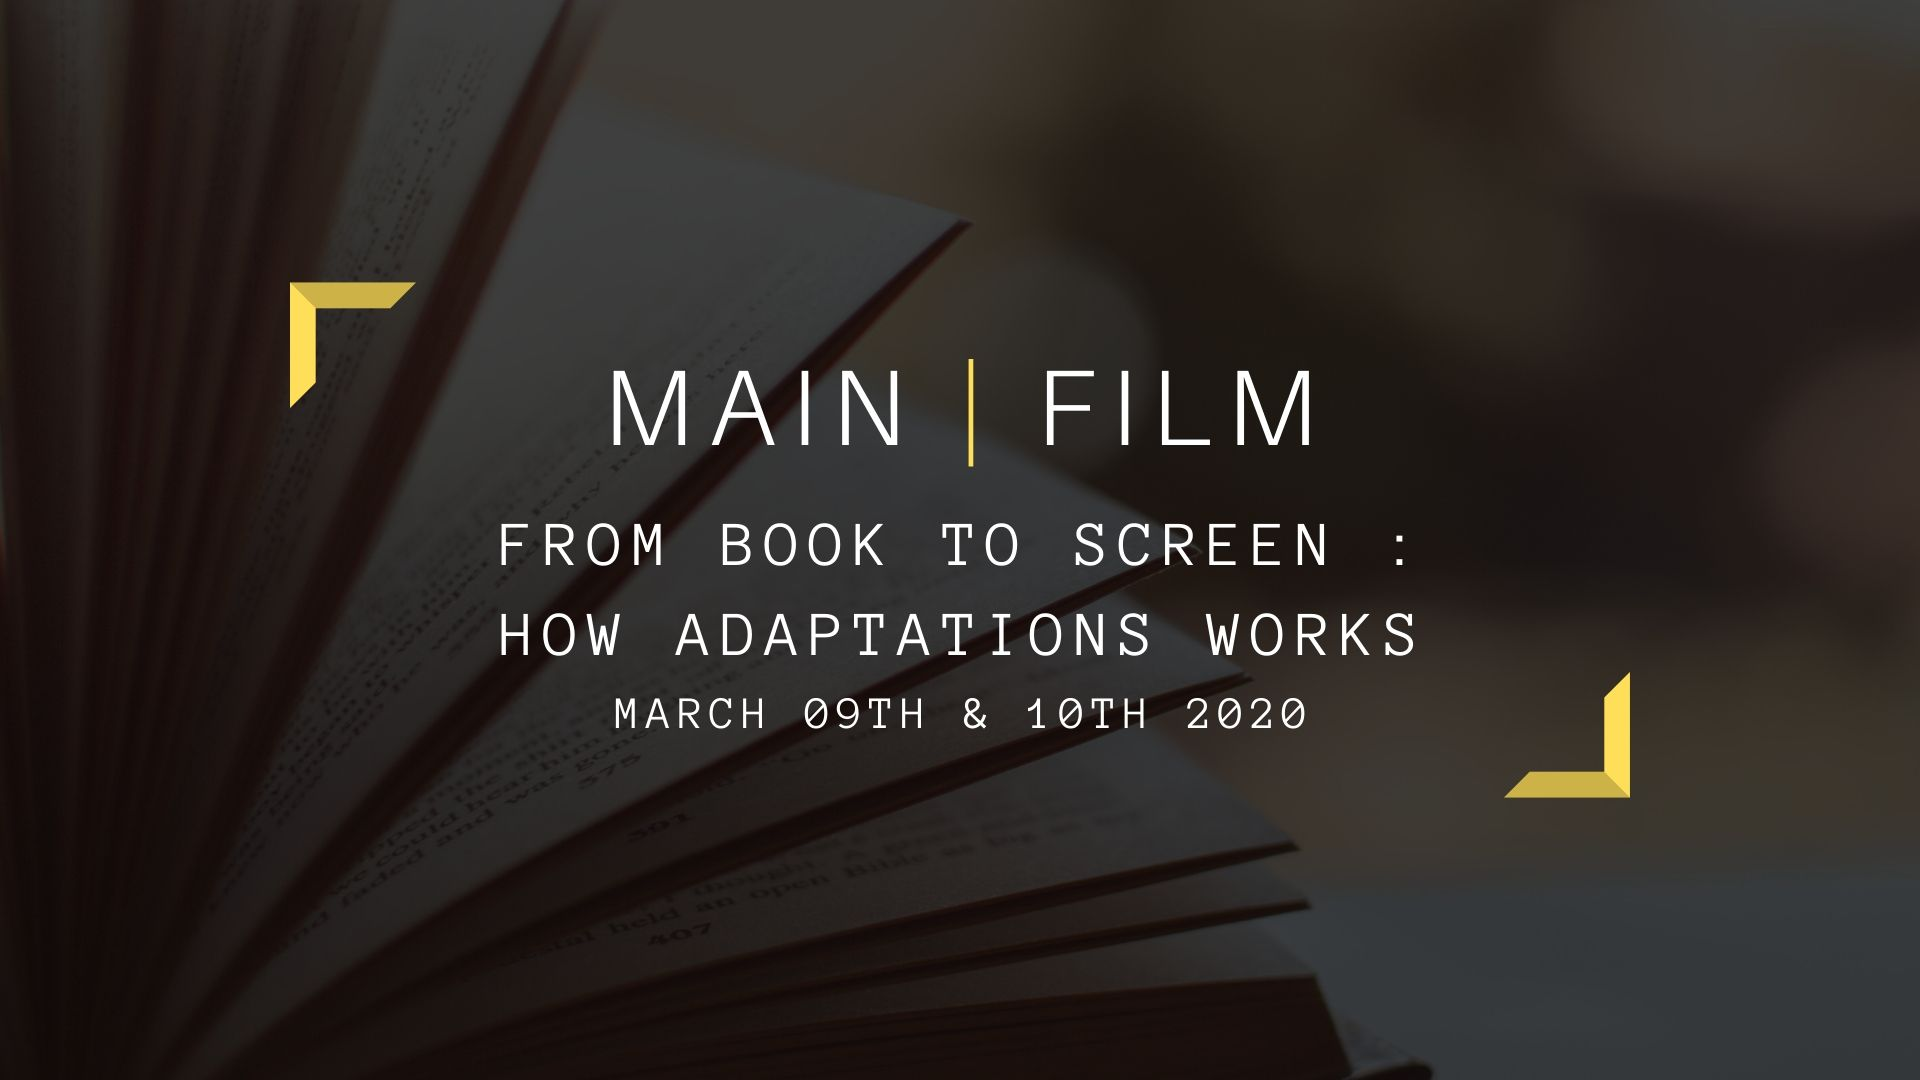 From book to screen : How adaptations works